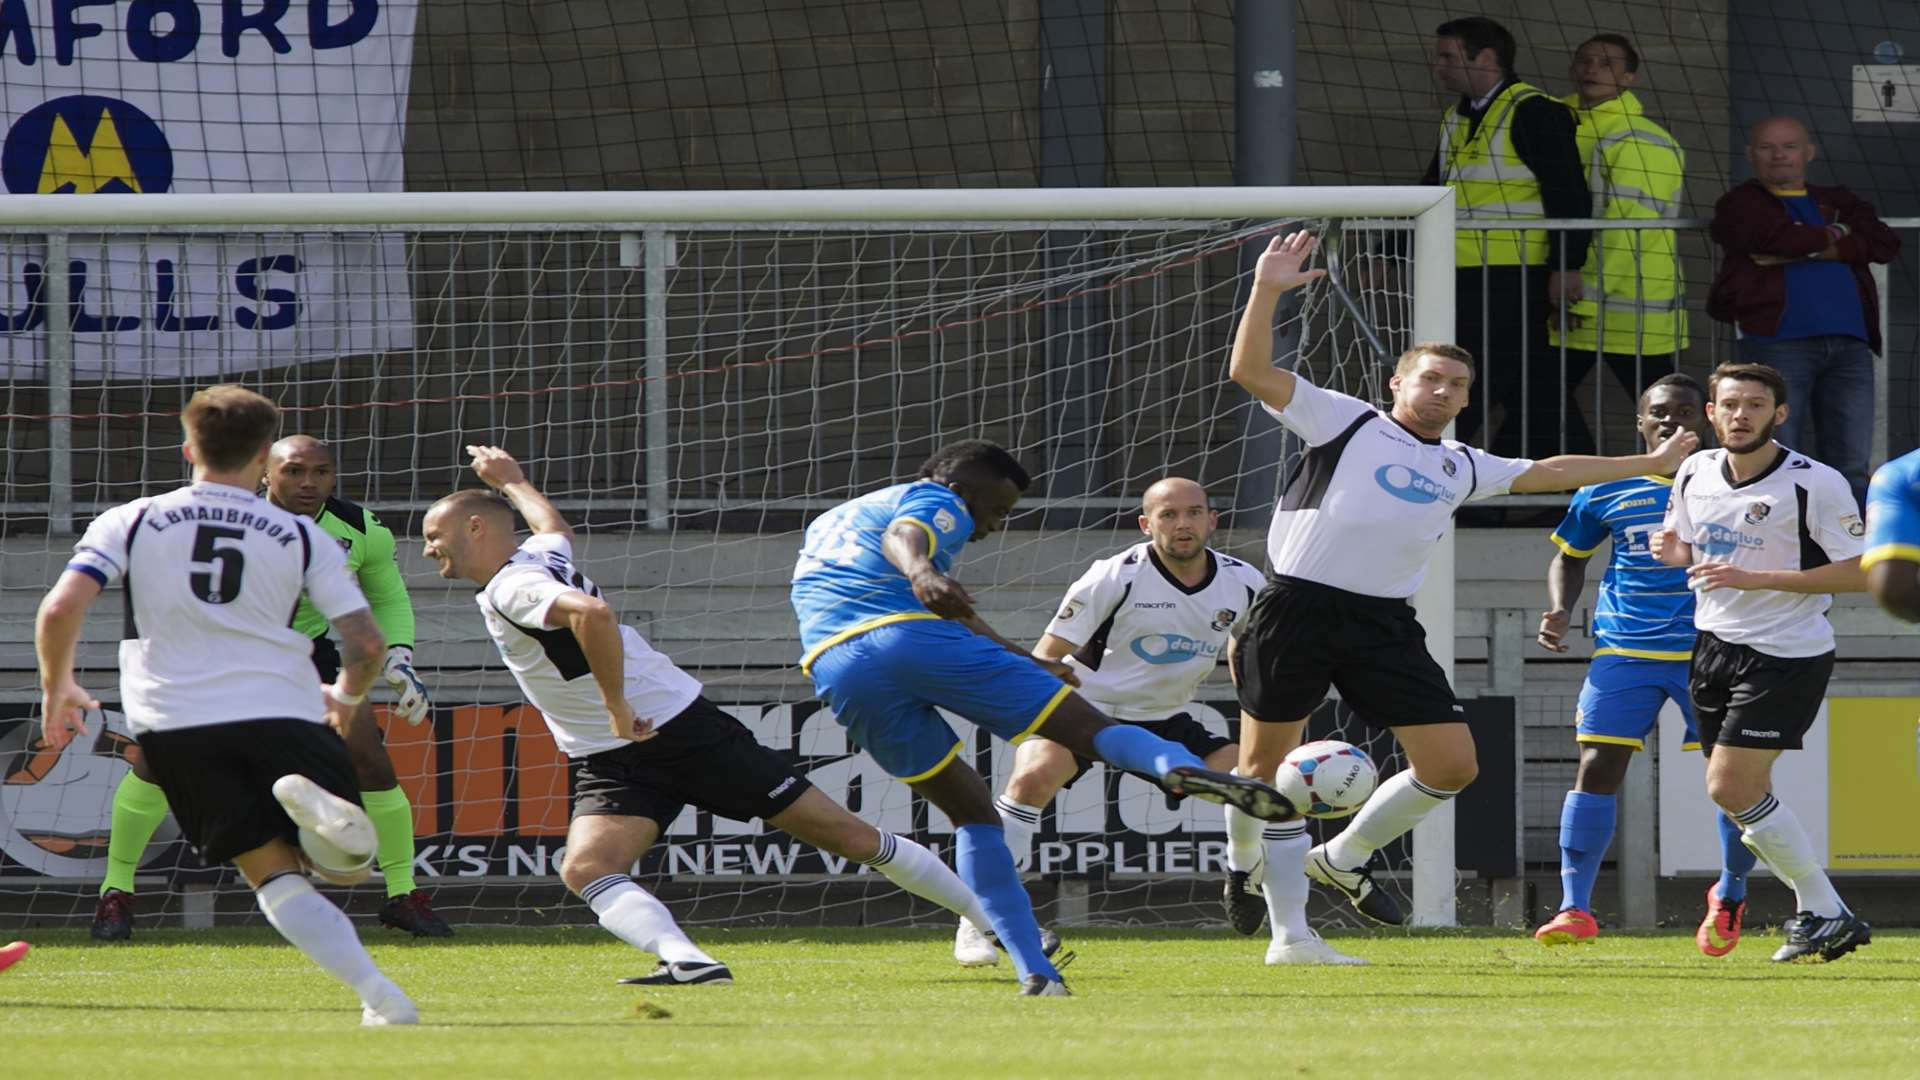 Dartford do their best to block this strike from Torquay's Duane Ofori-Acheampong Picture: Andy Payton